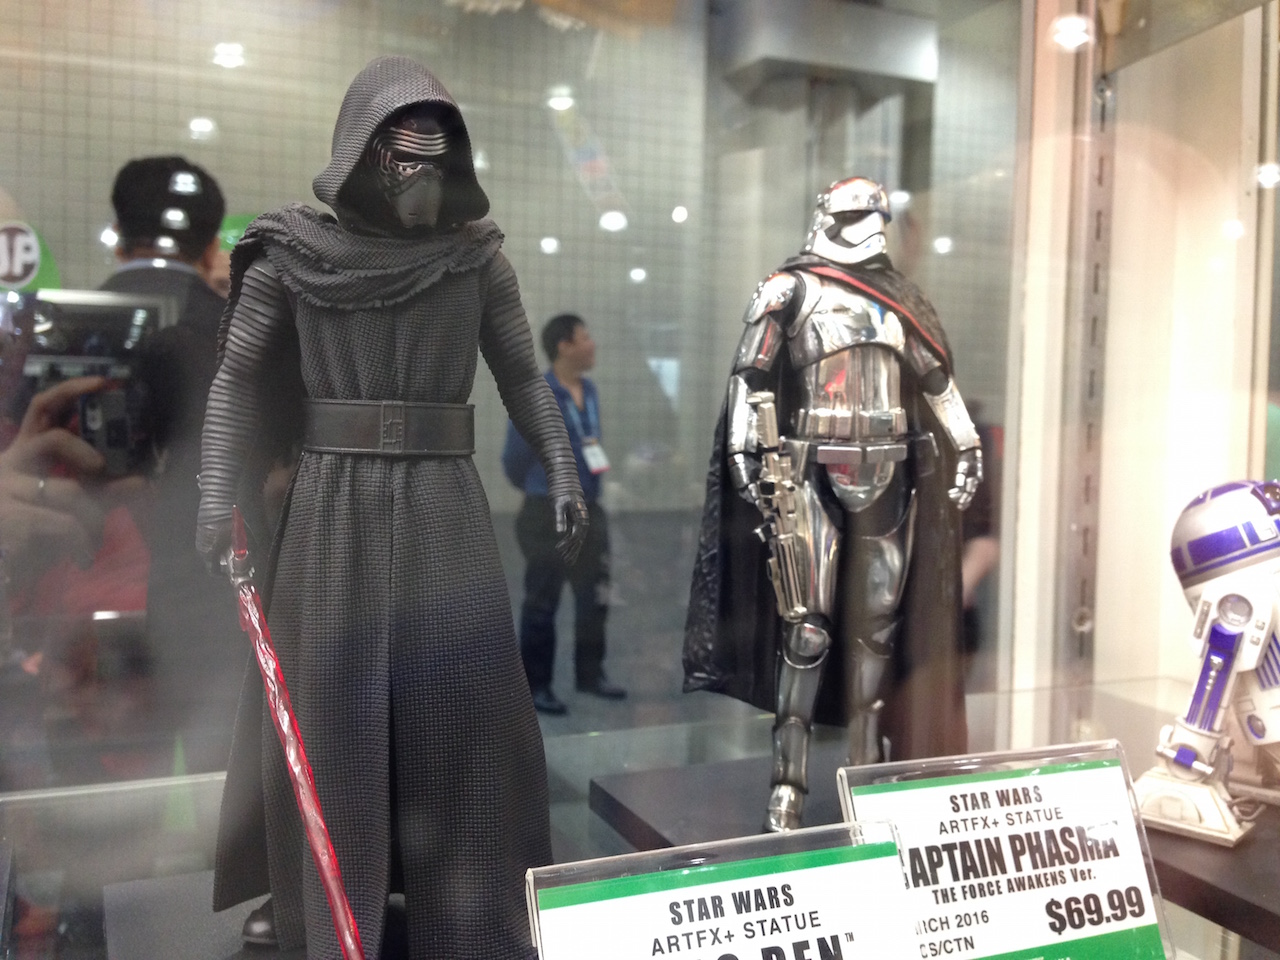 Kylo Ren and Captain Phasma Figures